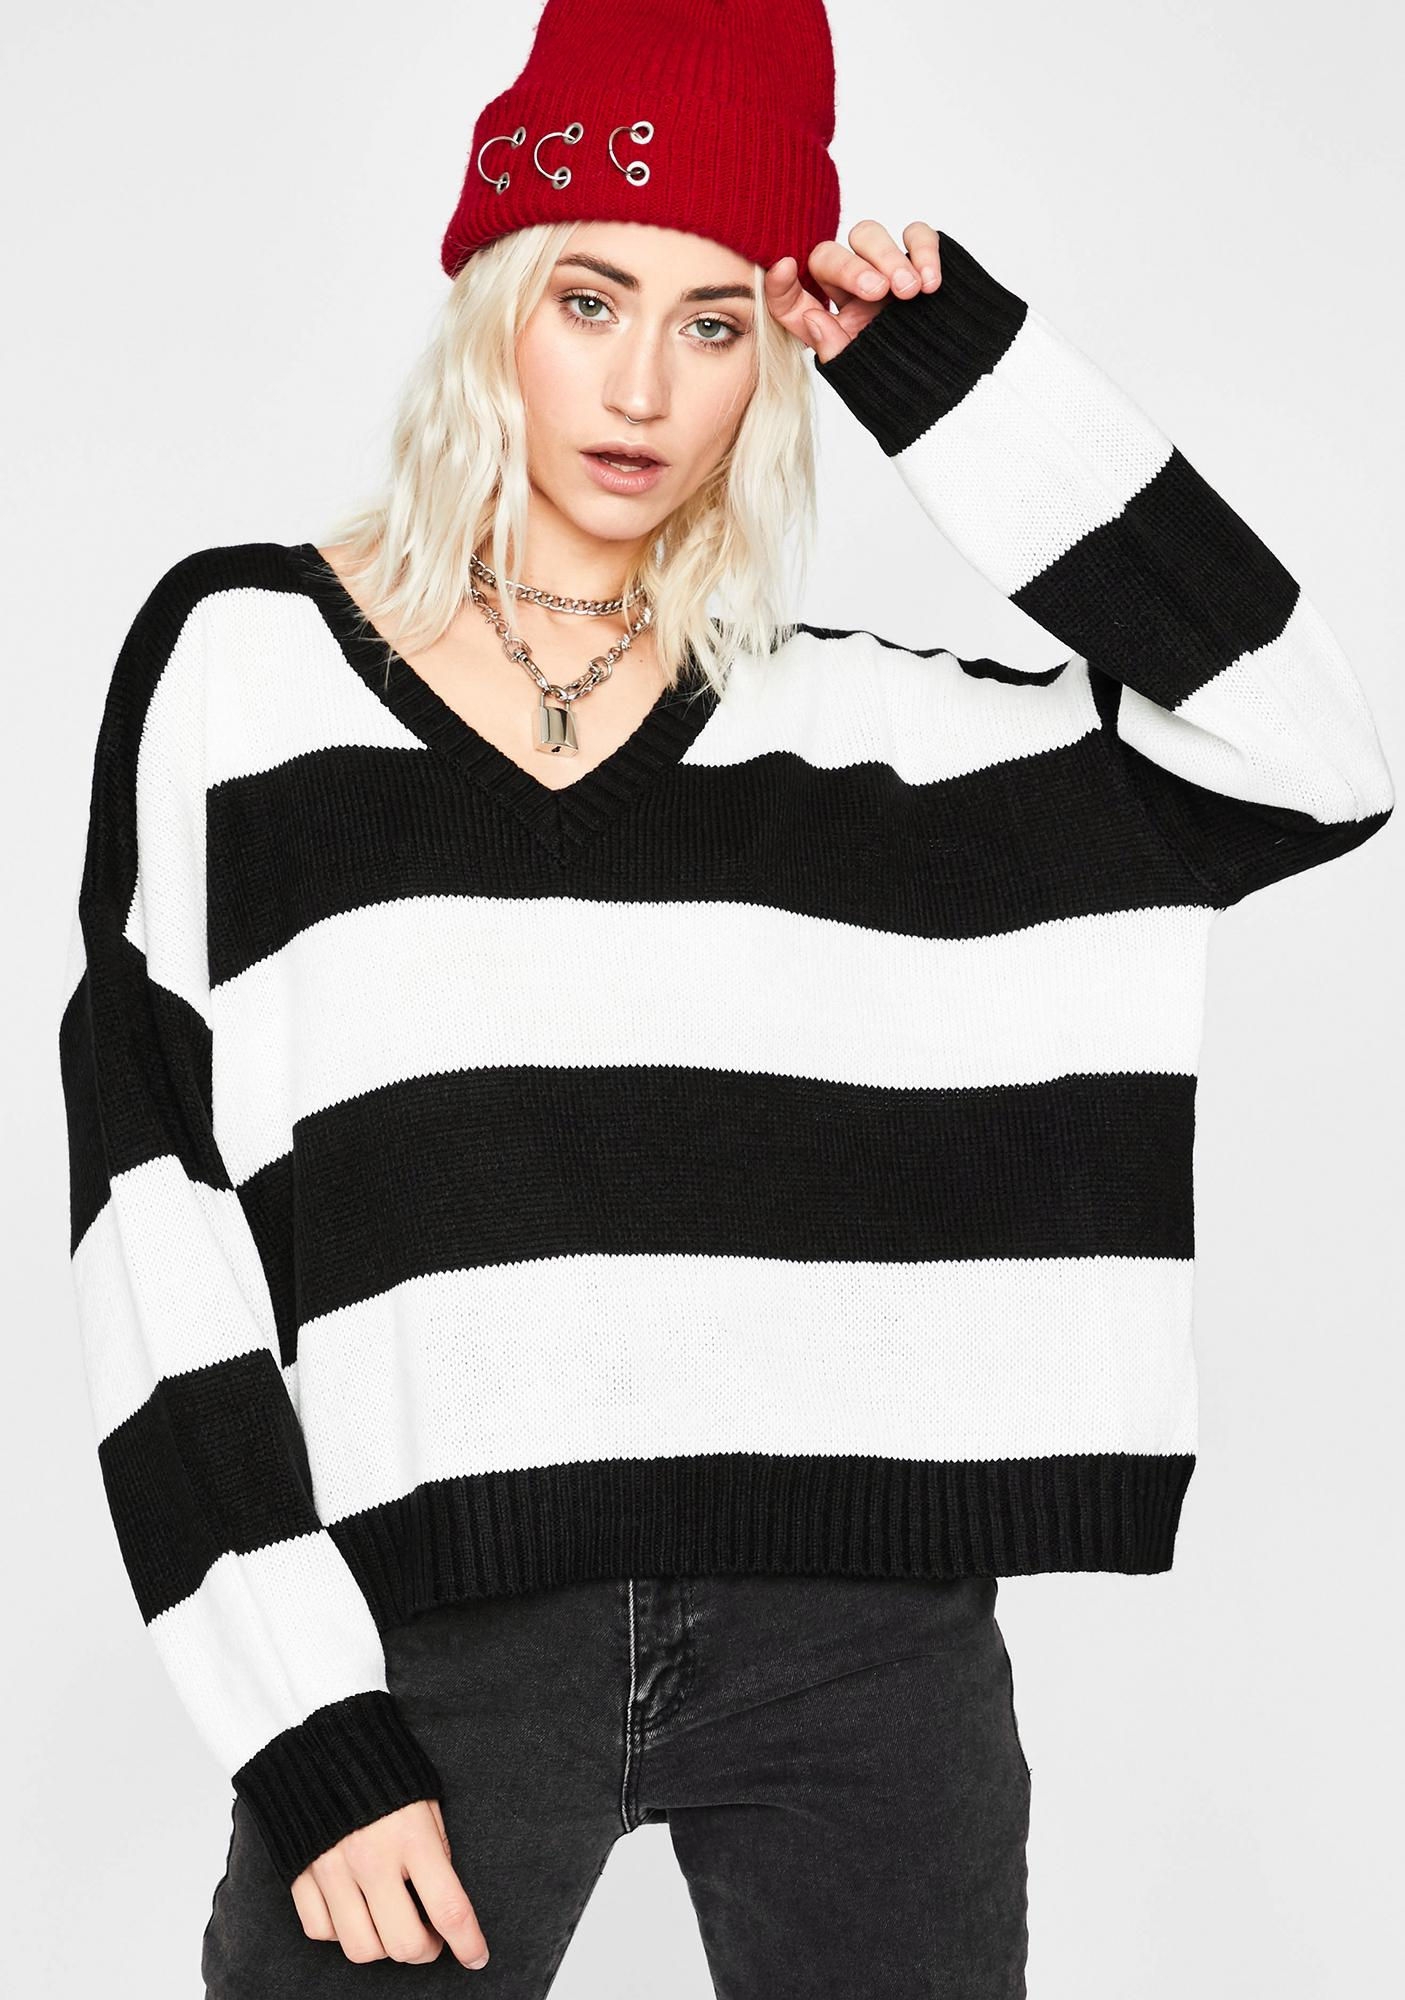 The Sass is Strong with This One Knitted Sweaters Pullover for Teenager Girls